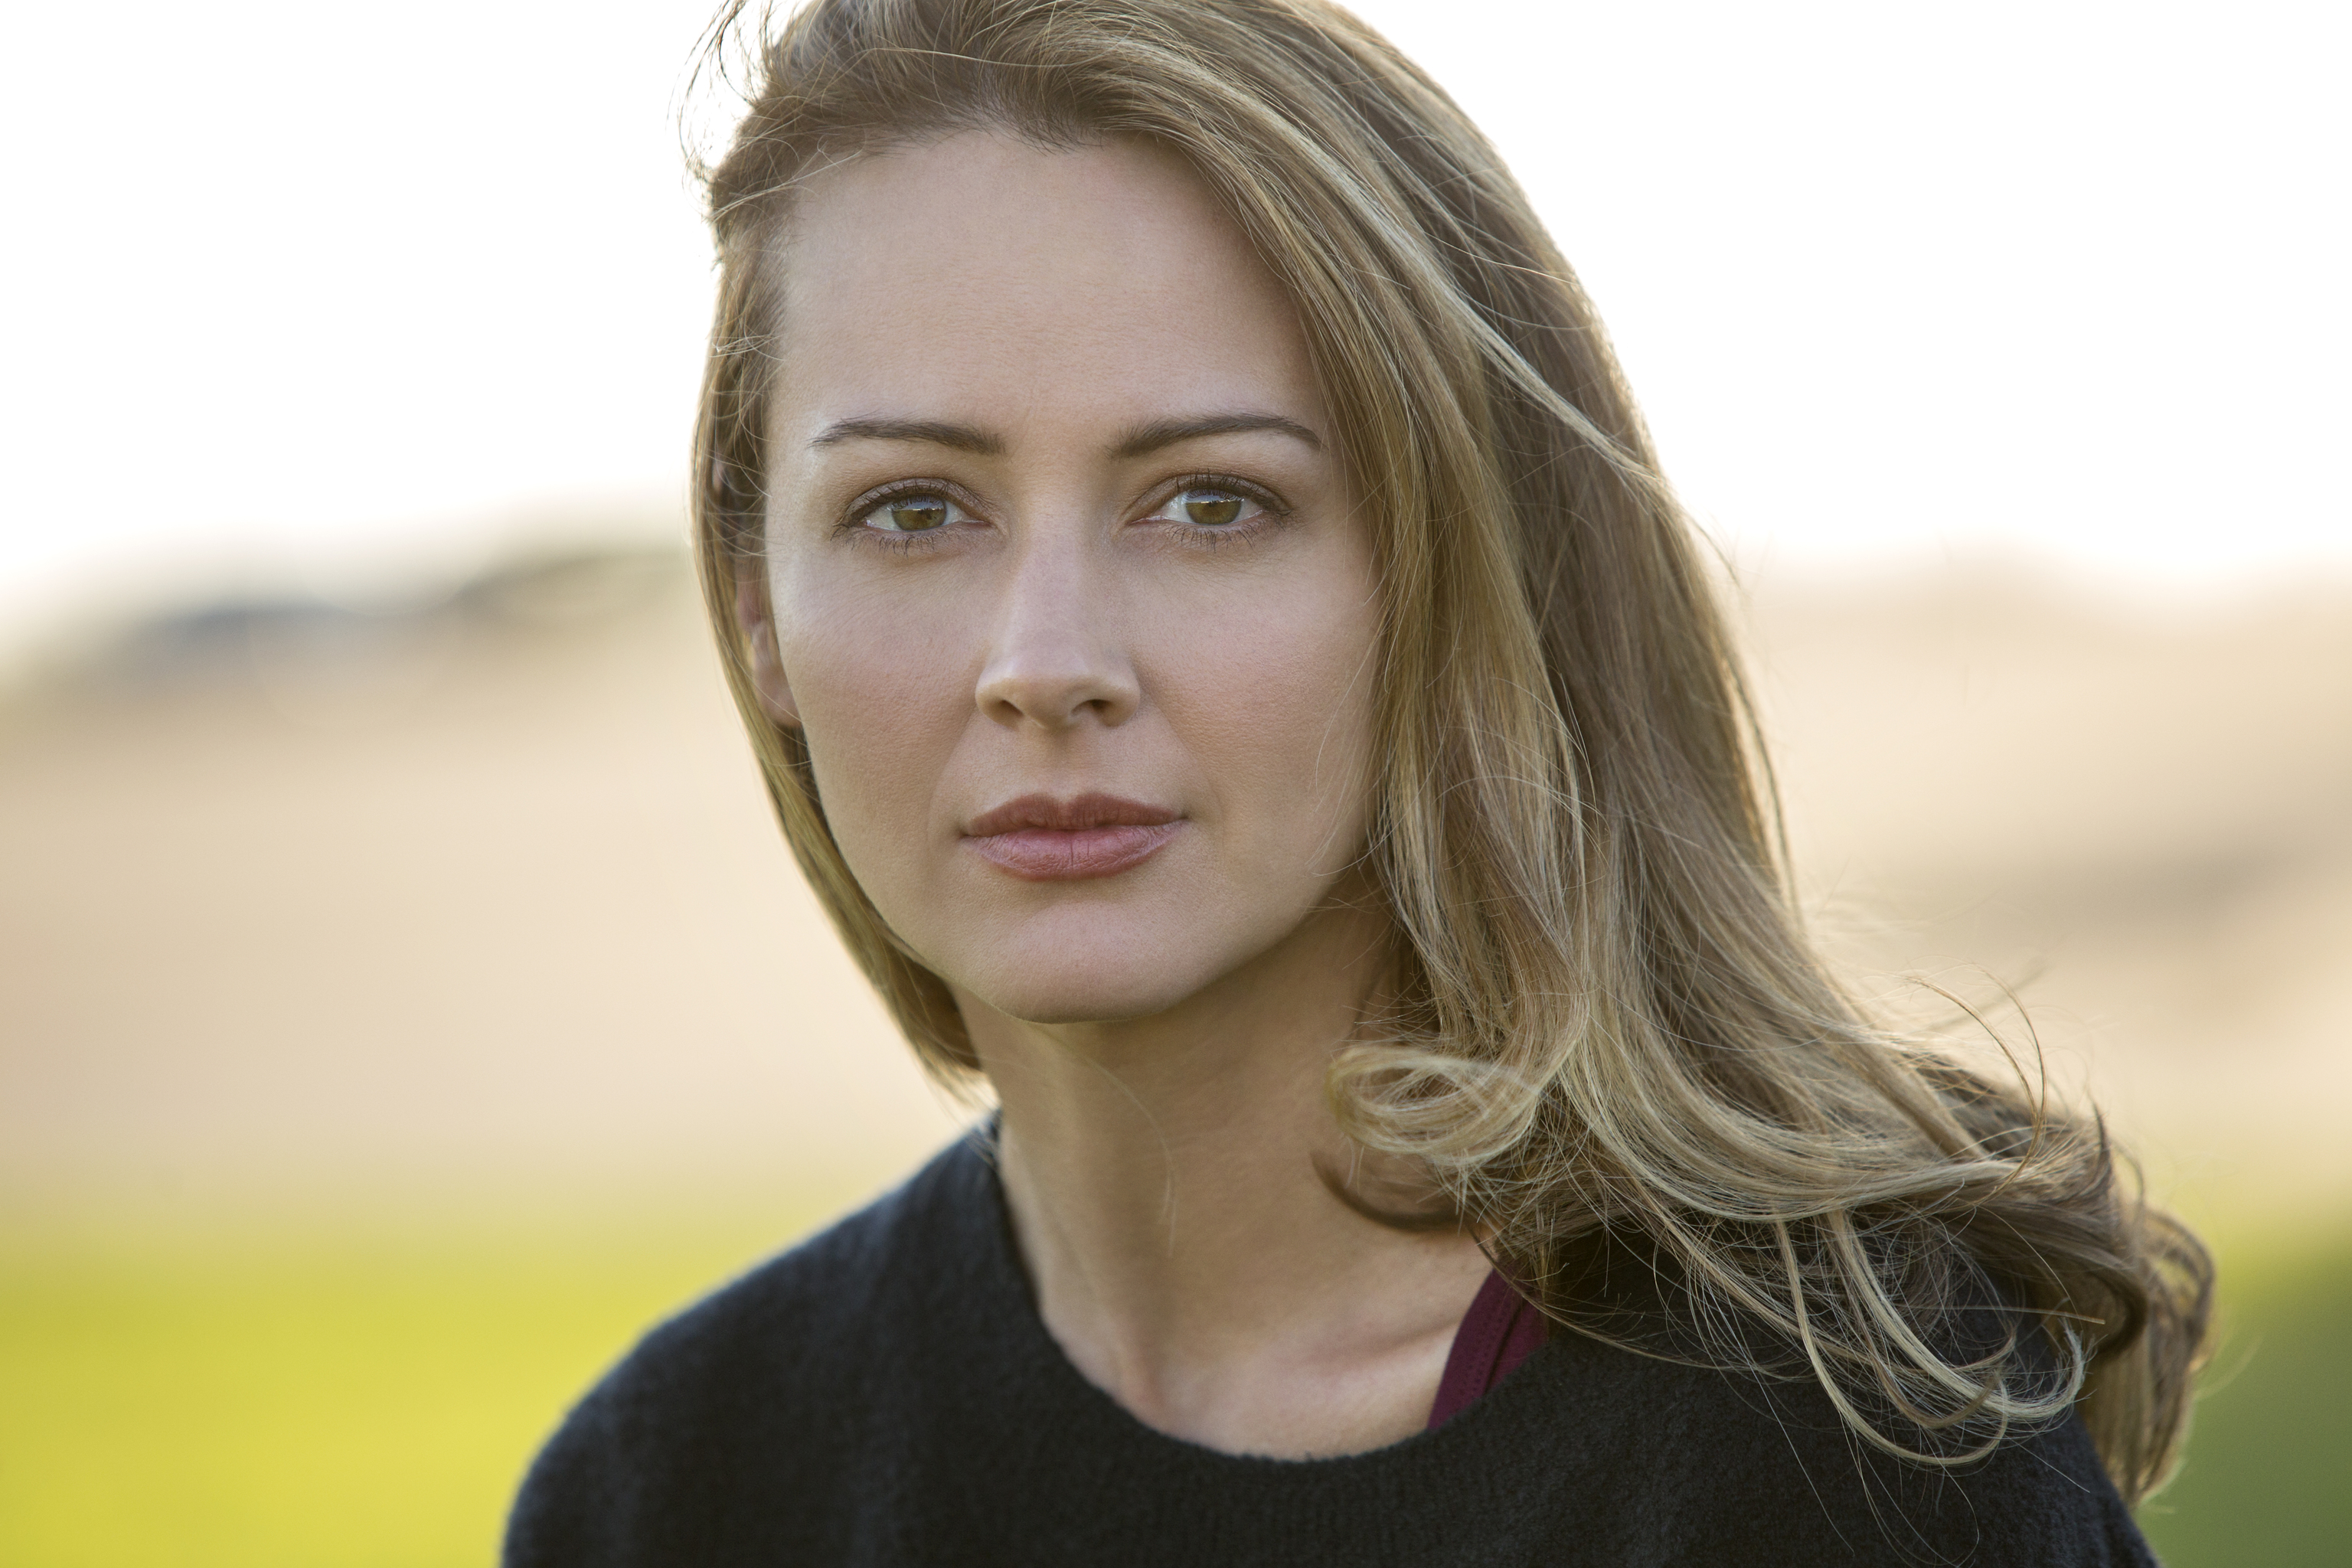 amy acker the gifted, hd tv shows, 4k wallpapers, images